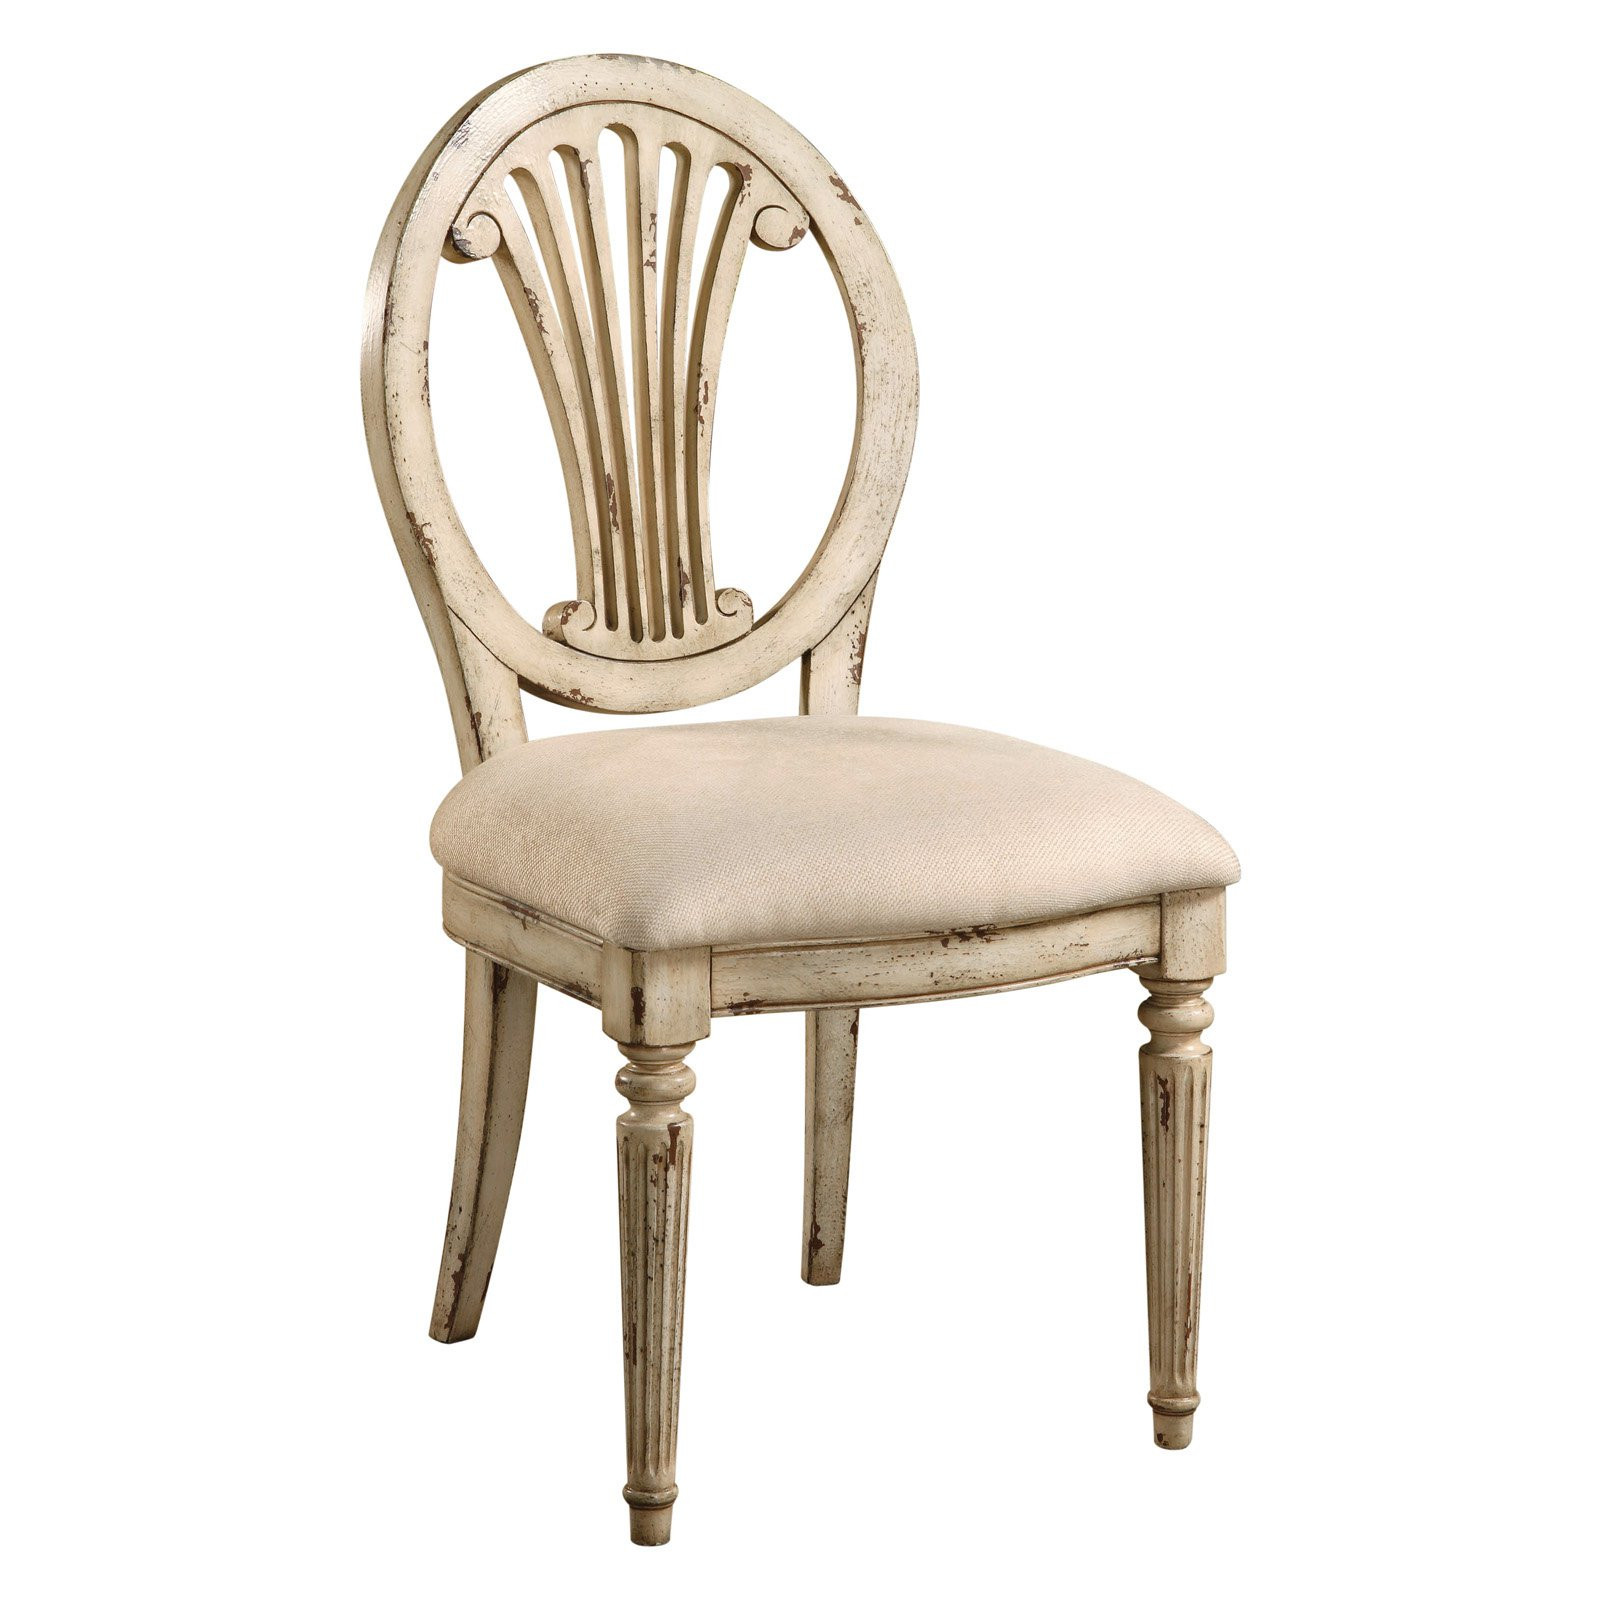 Best ideas about Shabby Chic Chairs . Save or Pin Hooker Shabby Chic Chair fice Chairs at Hayneedle Now.